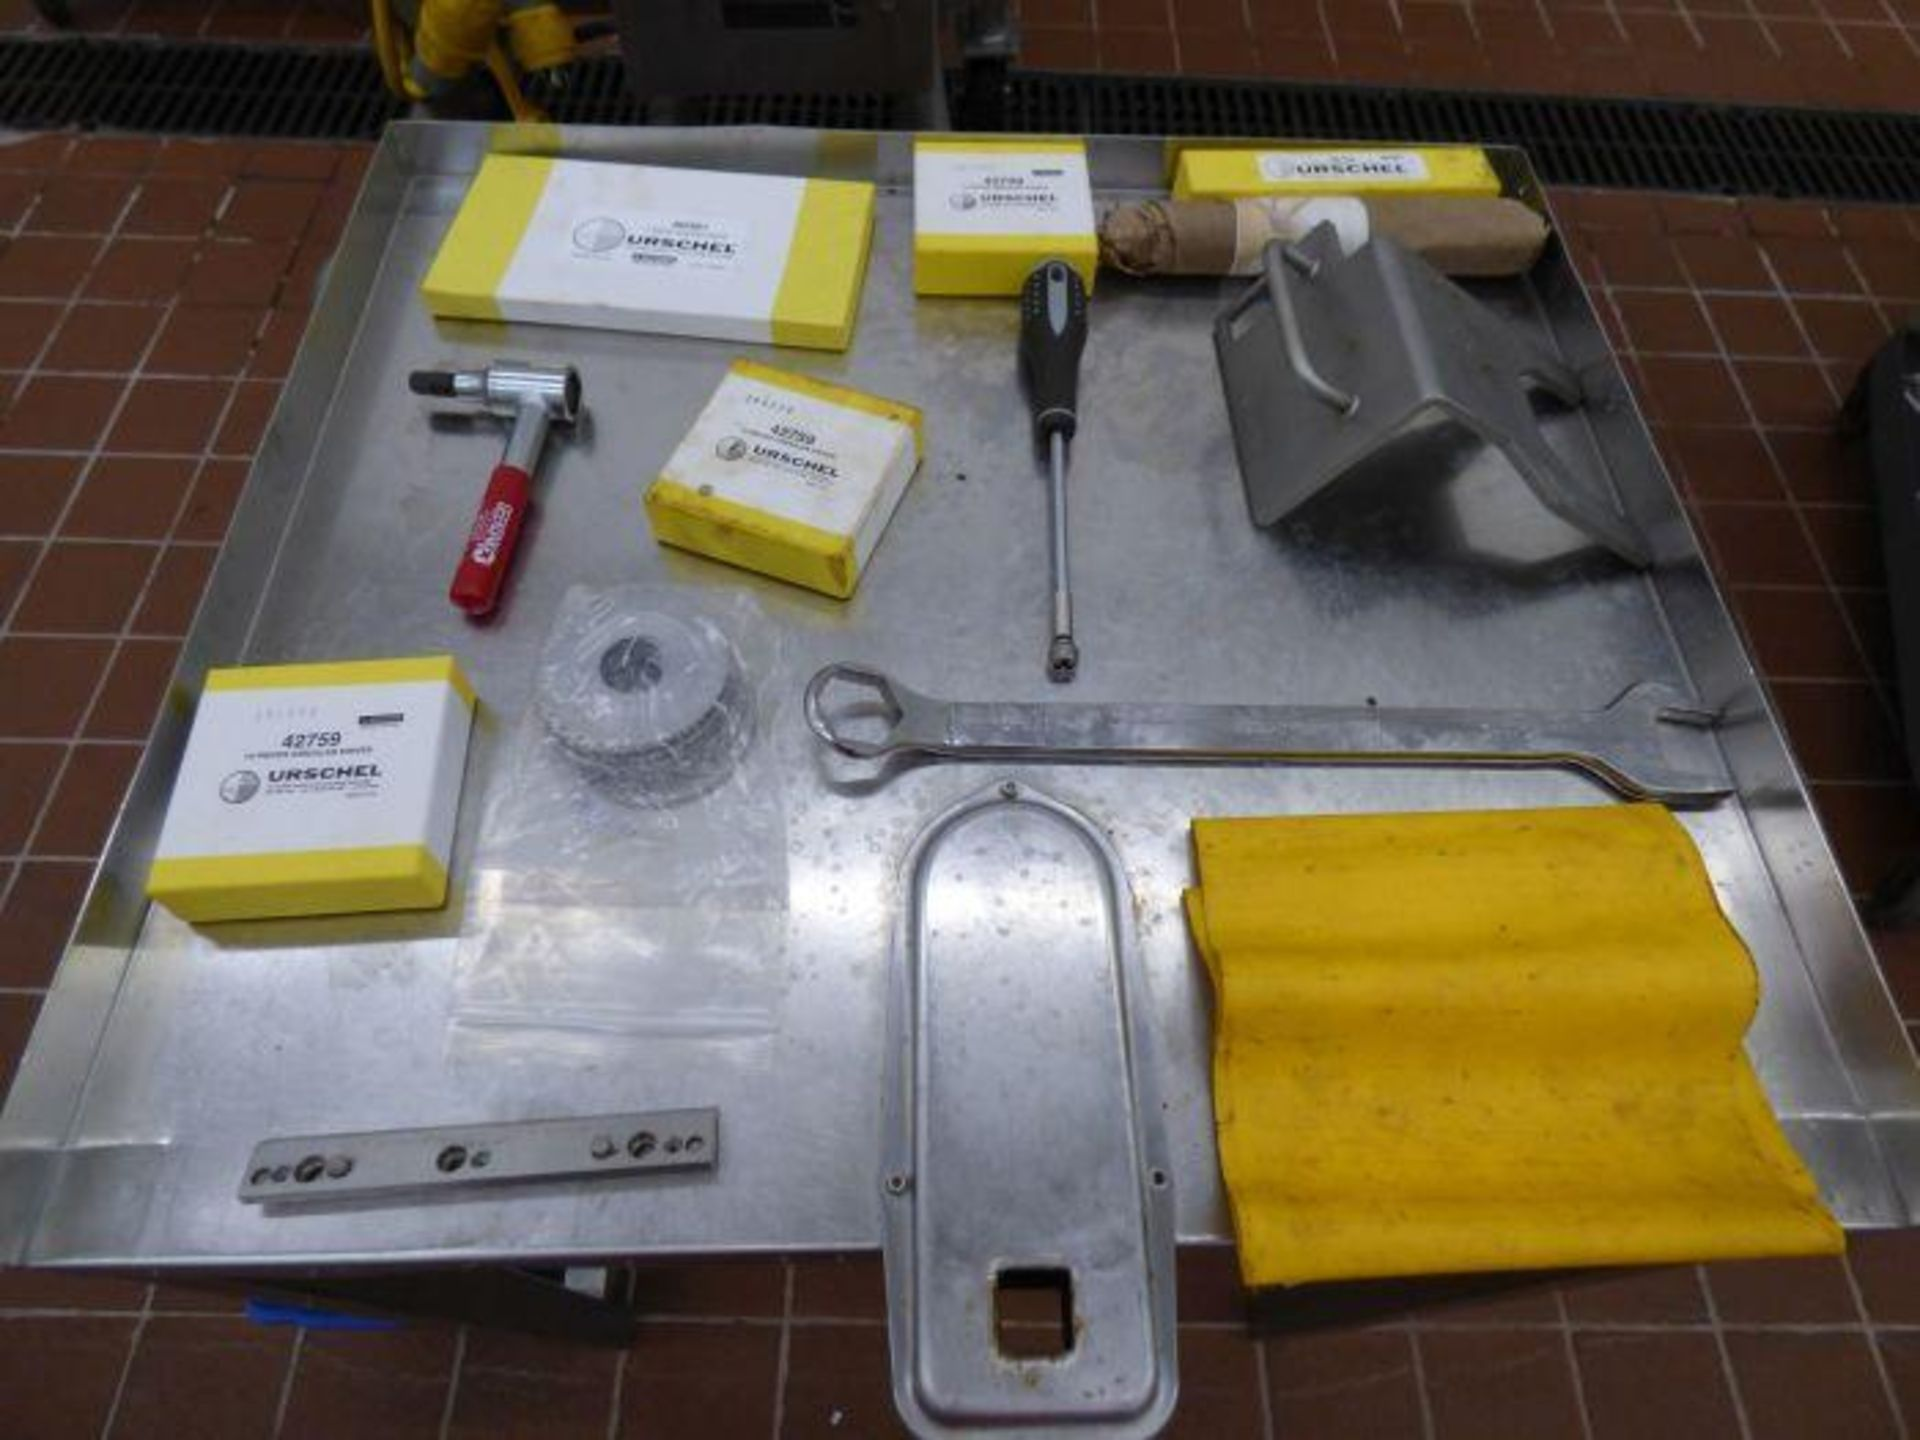 2015 Urshel Stainless Steel Dicer with Spare Parts - Image 10 of 25